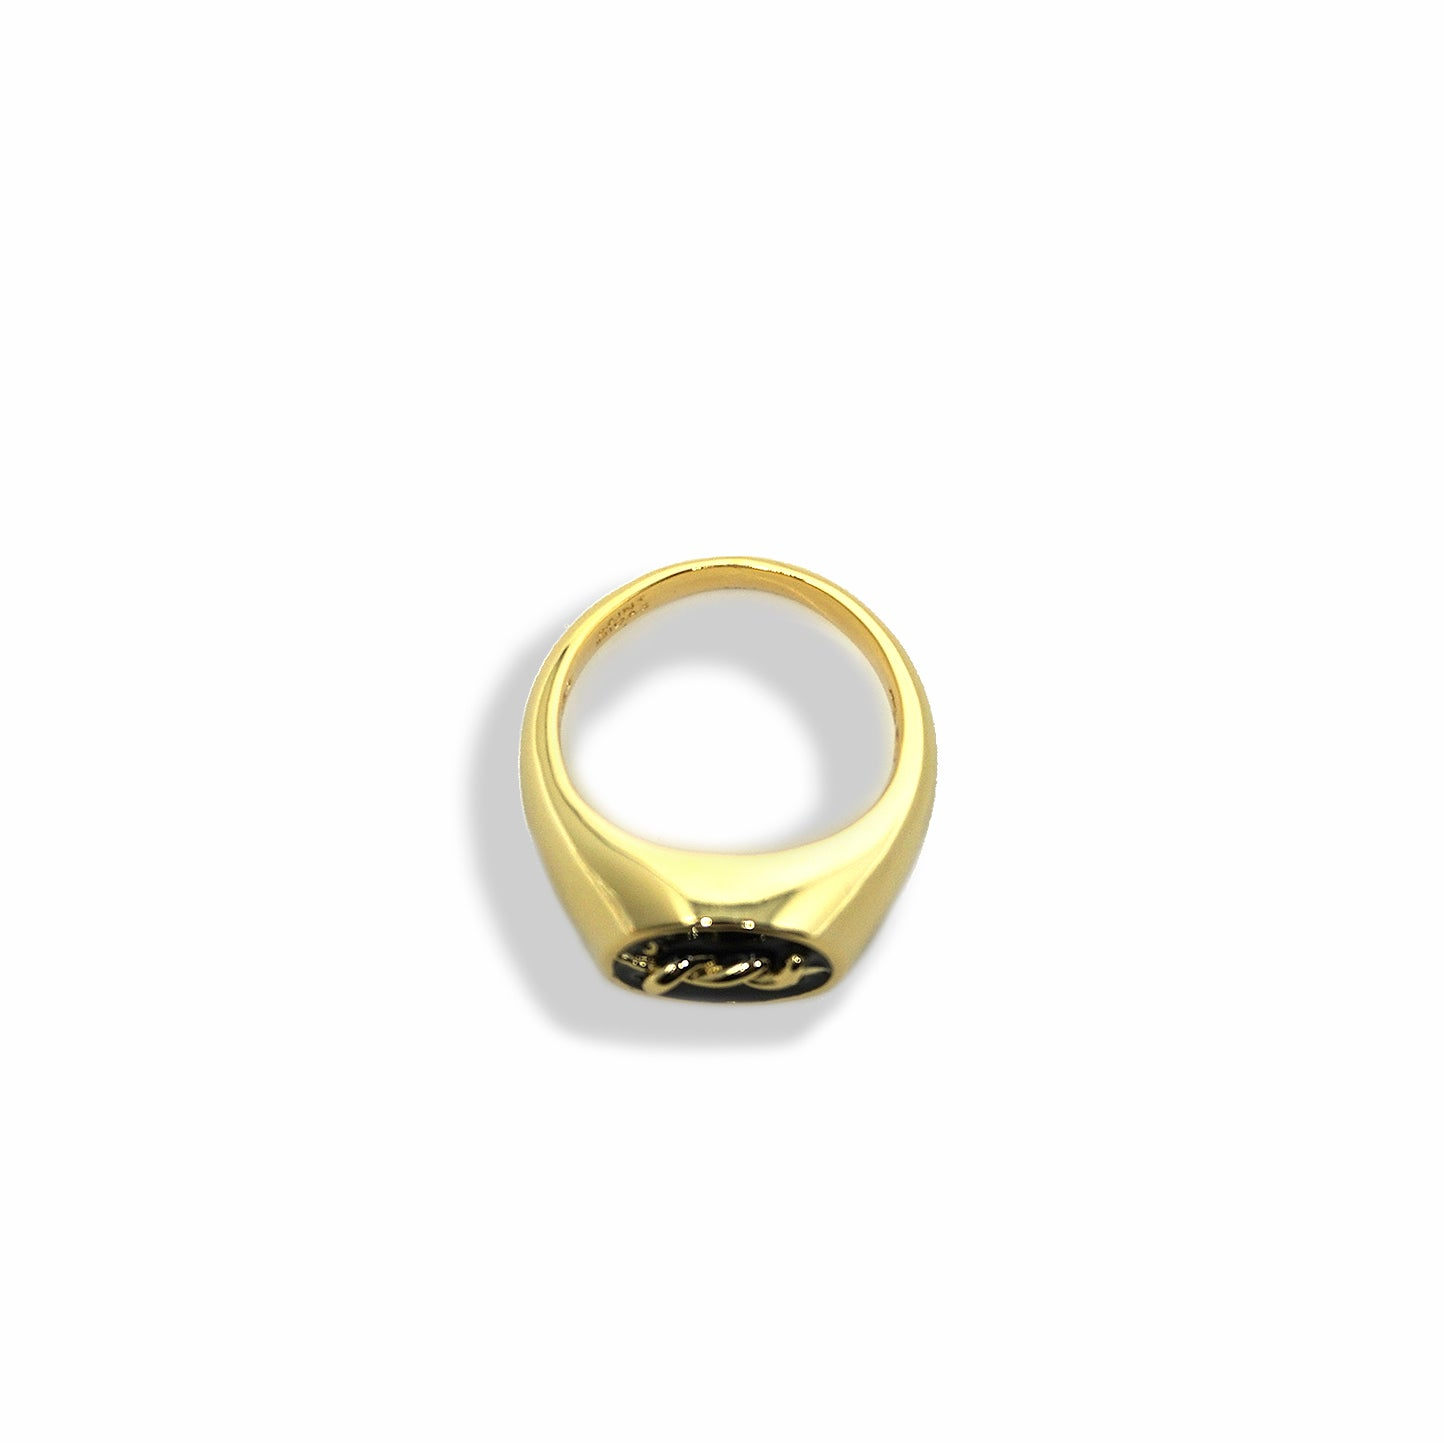 BP x Saint Midas Yellow Gold Barbed Signet Ring